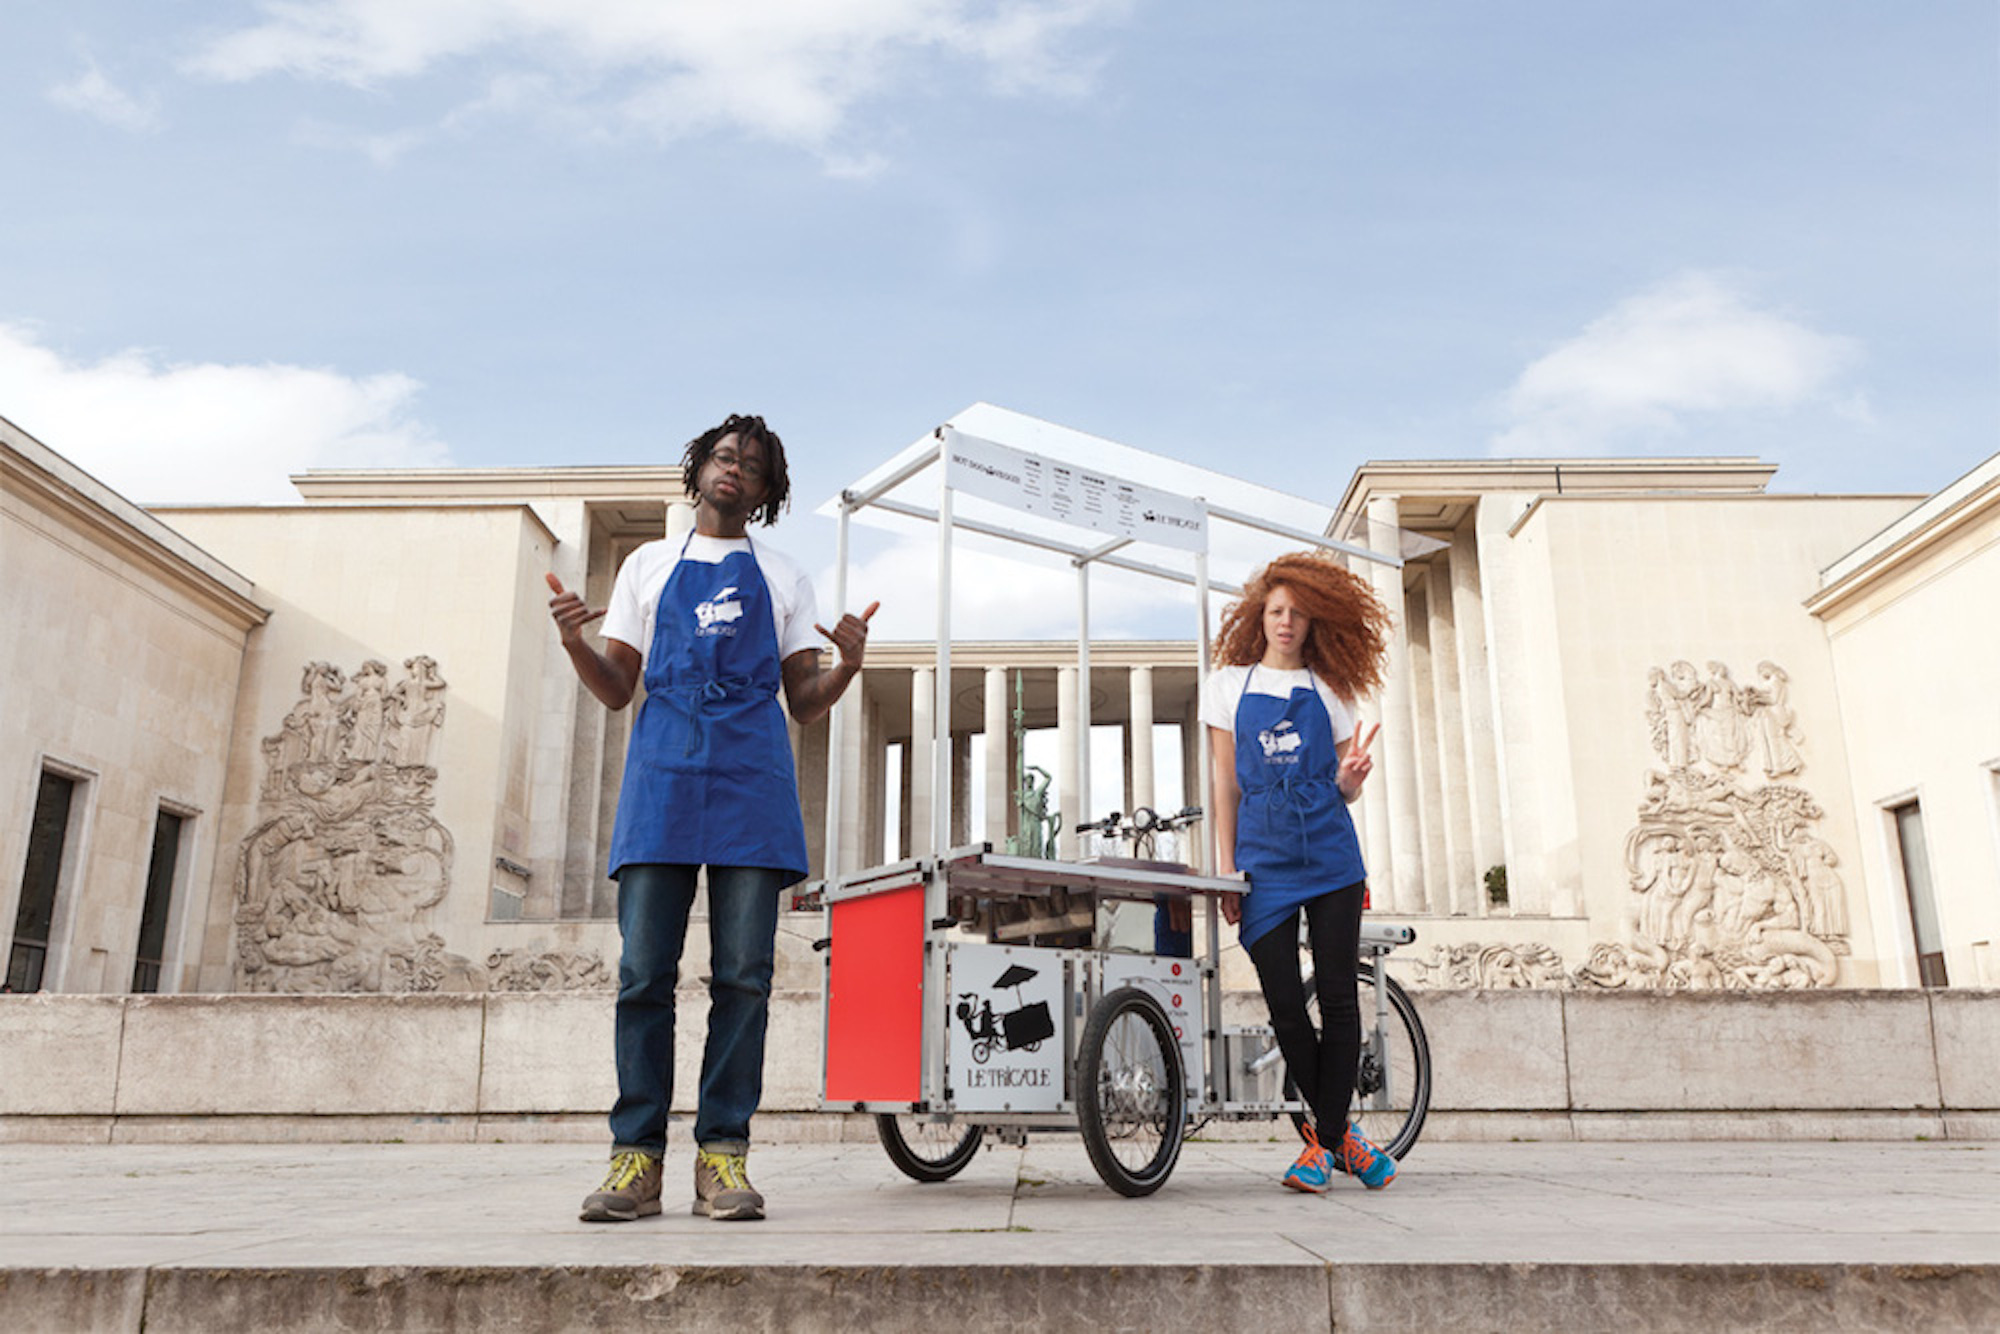 HiP Paris Blog rounds up the top brunch spots in Paris like the Tricycle, a cool vegan coffee shop run by its two founders who are posing in front of the Trocadero in blue aprons.